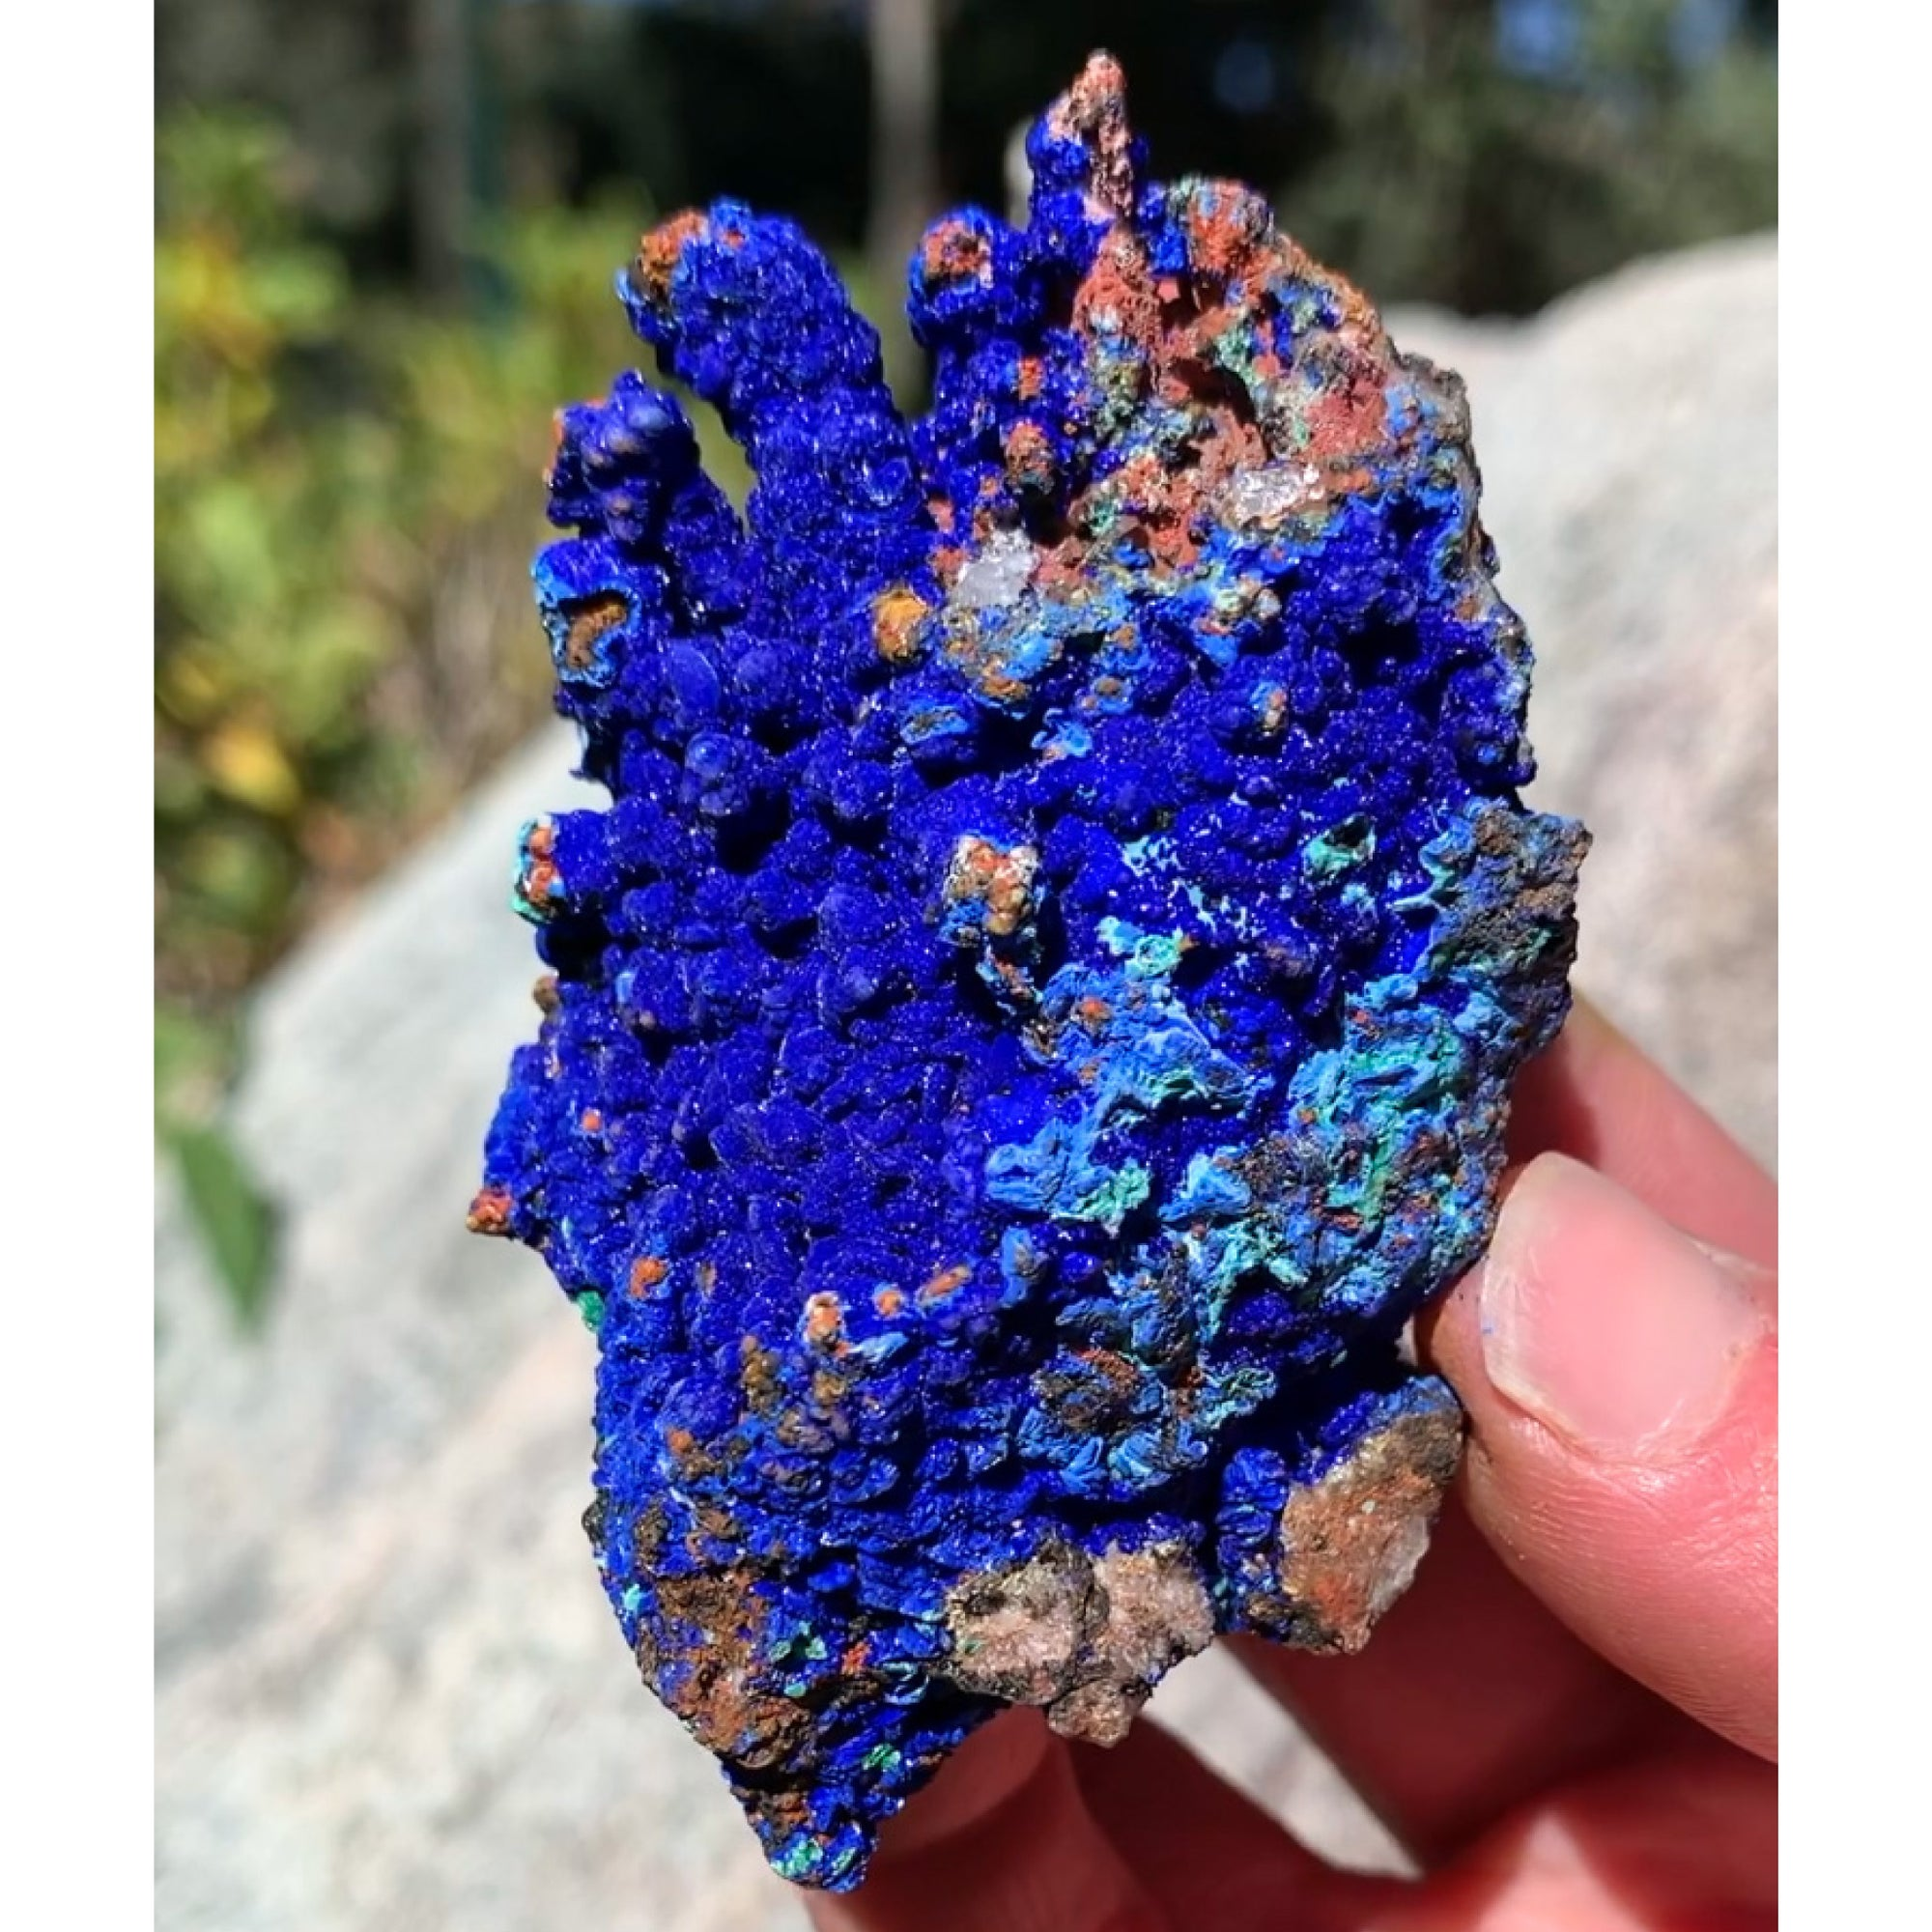 Azurite Malachite and Chrysocolla Mineral Specimen